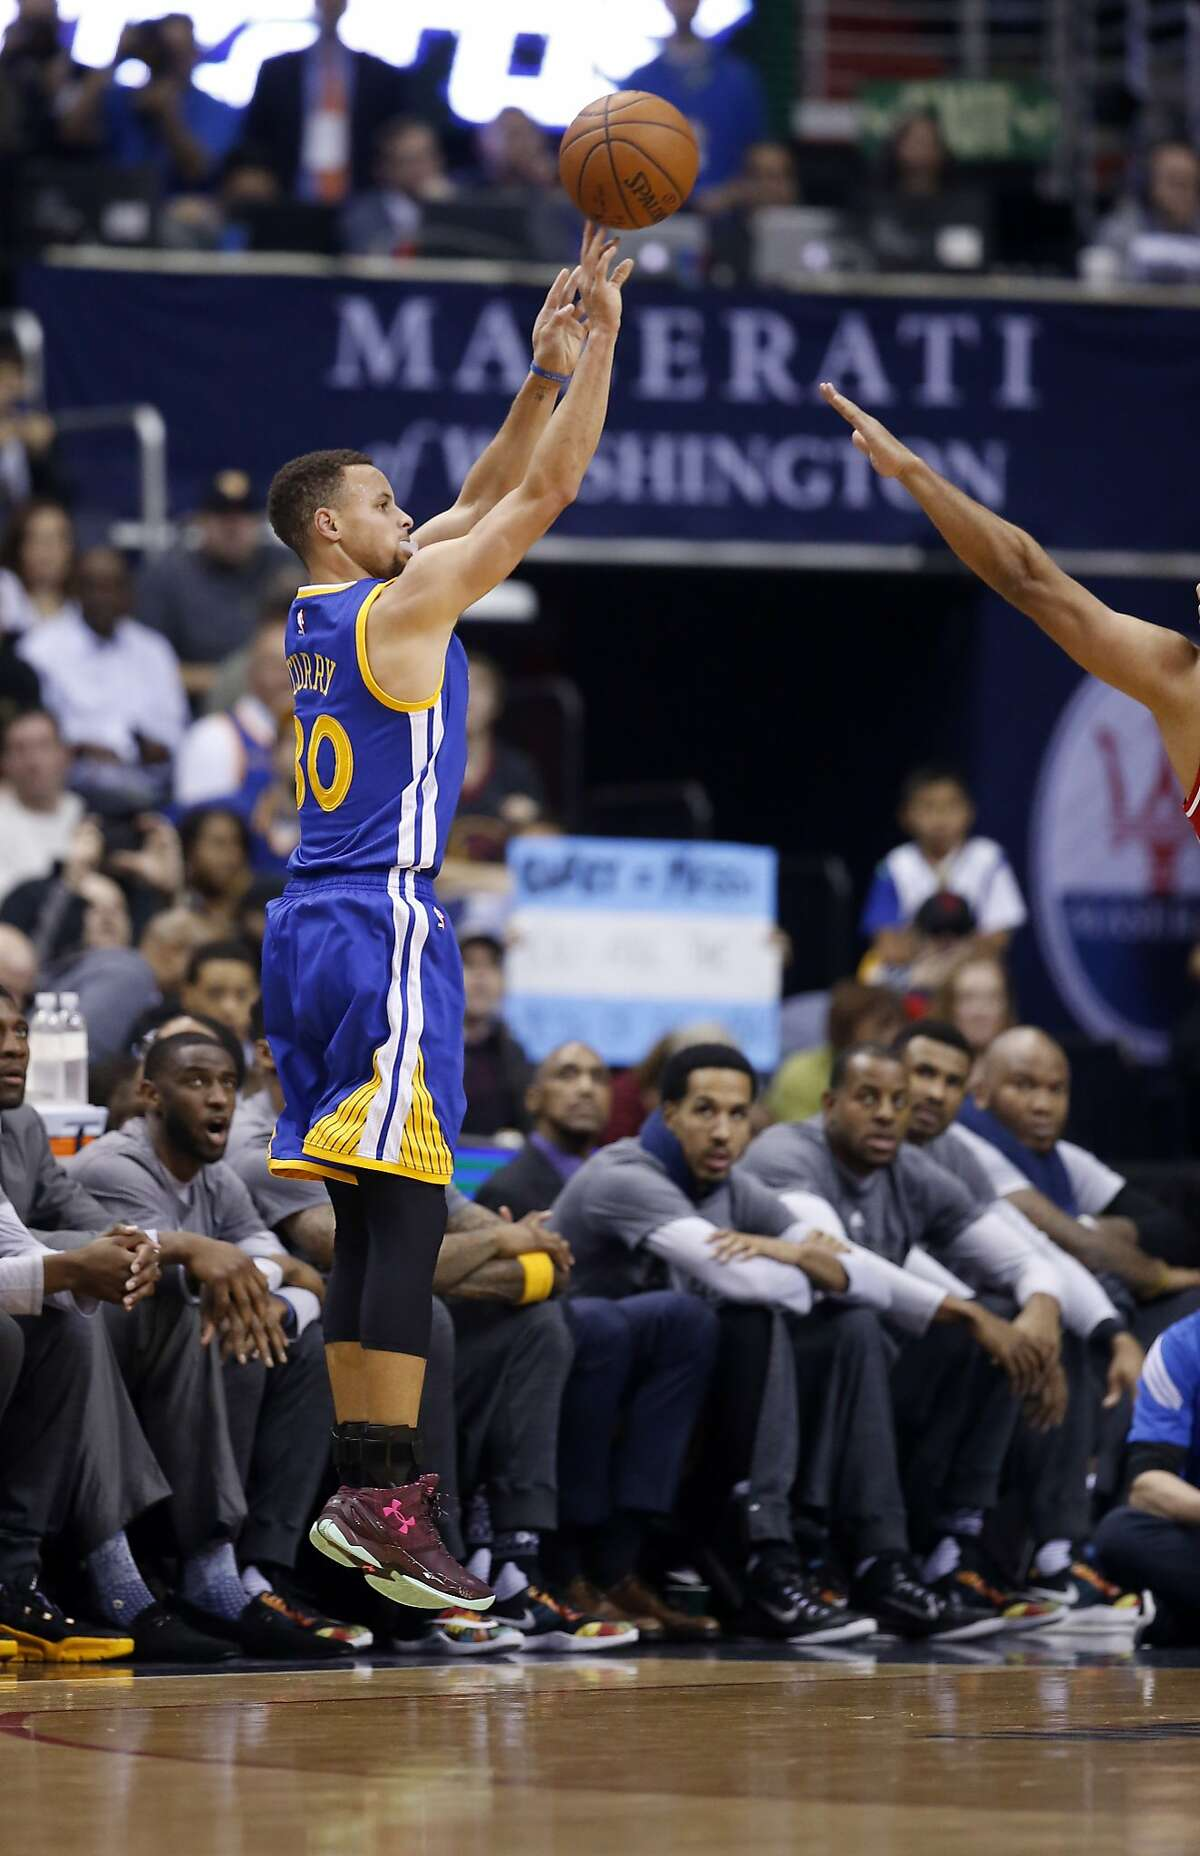 Golden State Warriors point guard Stephen Curry (30) shoots a three-pointer during the first half against the Washington Wizards on Wednesday at the Verizon Center.